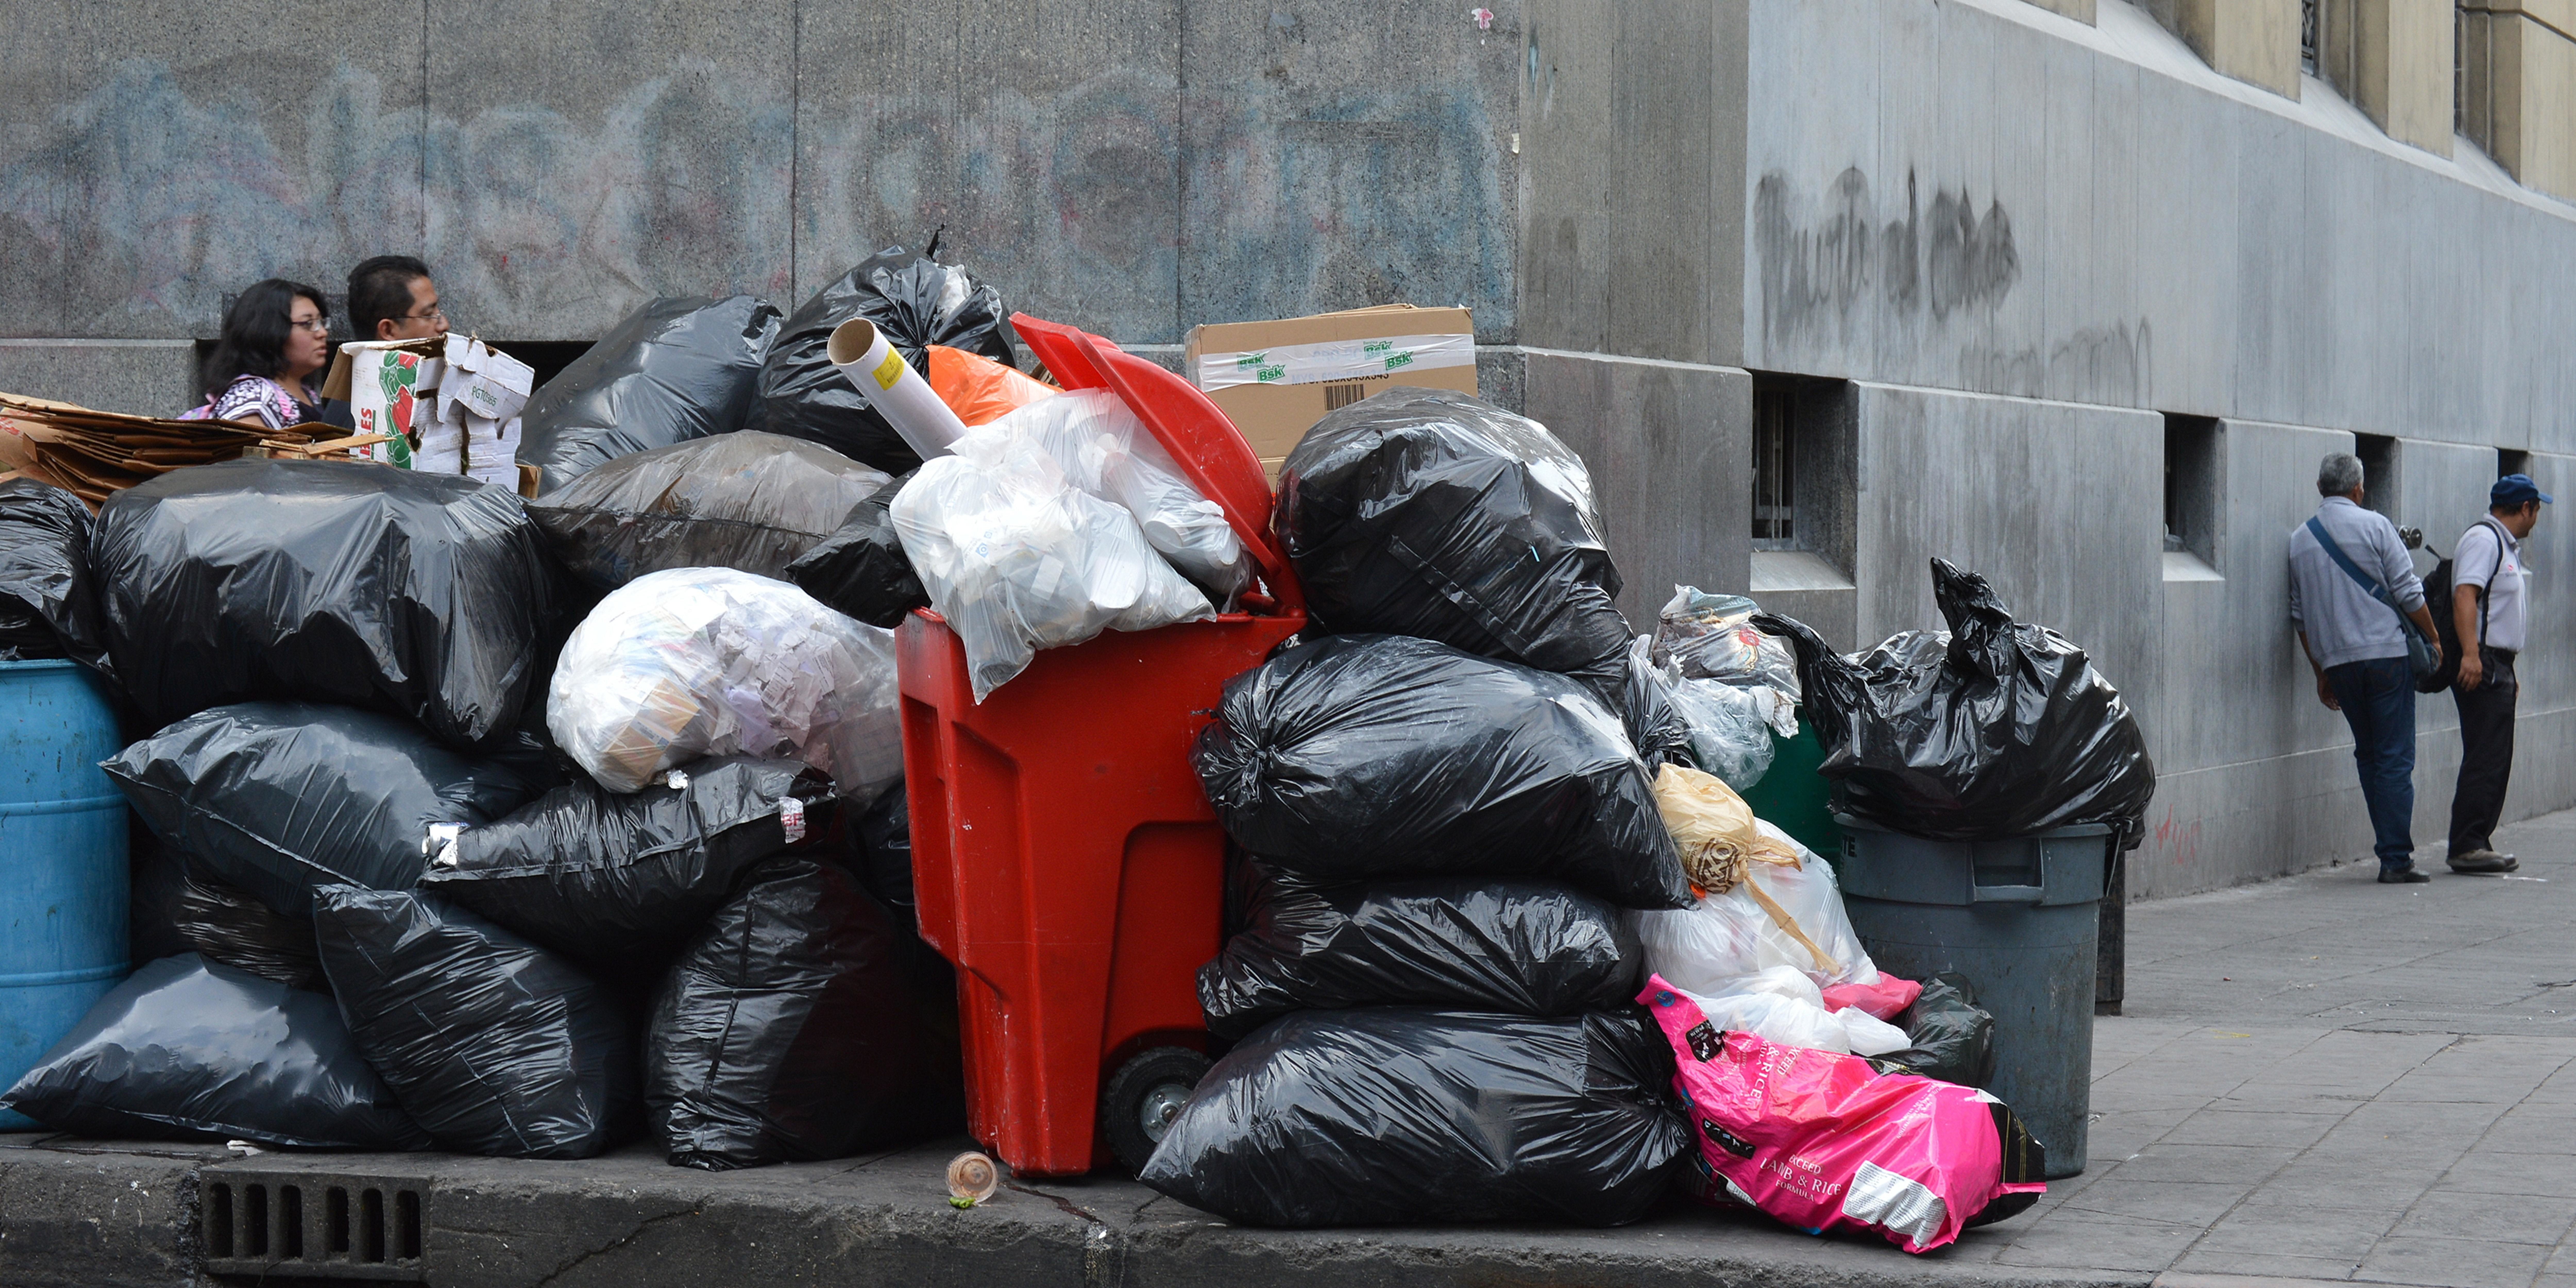 Rubbish and waste piling up at the side of a street.